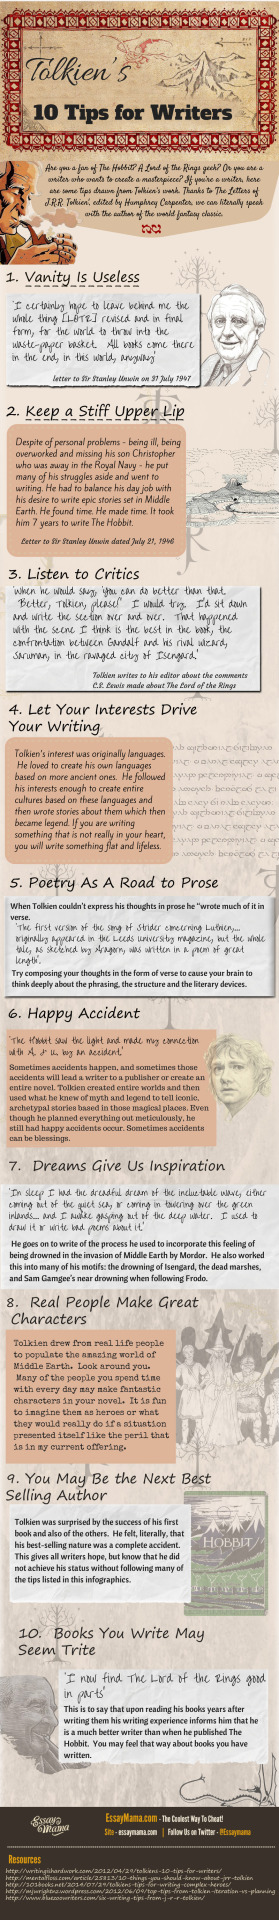 tolkien writingtips amwriting